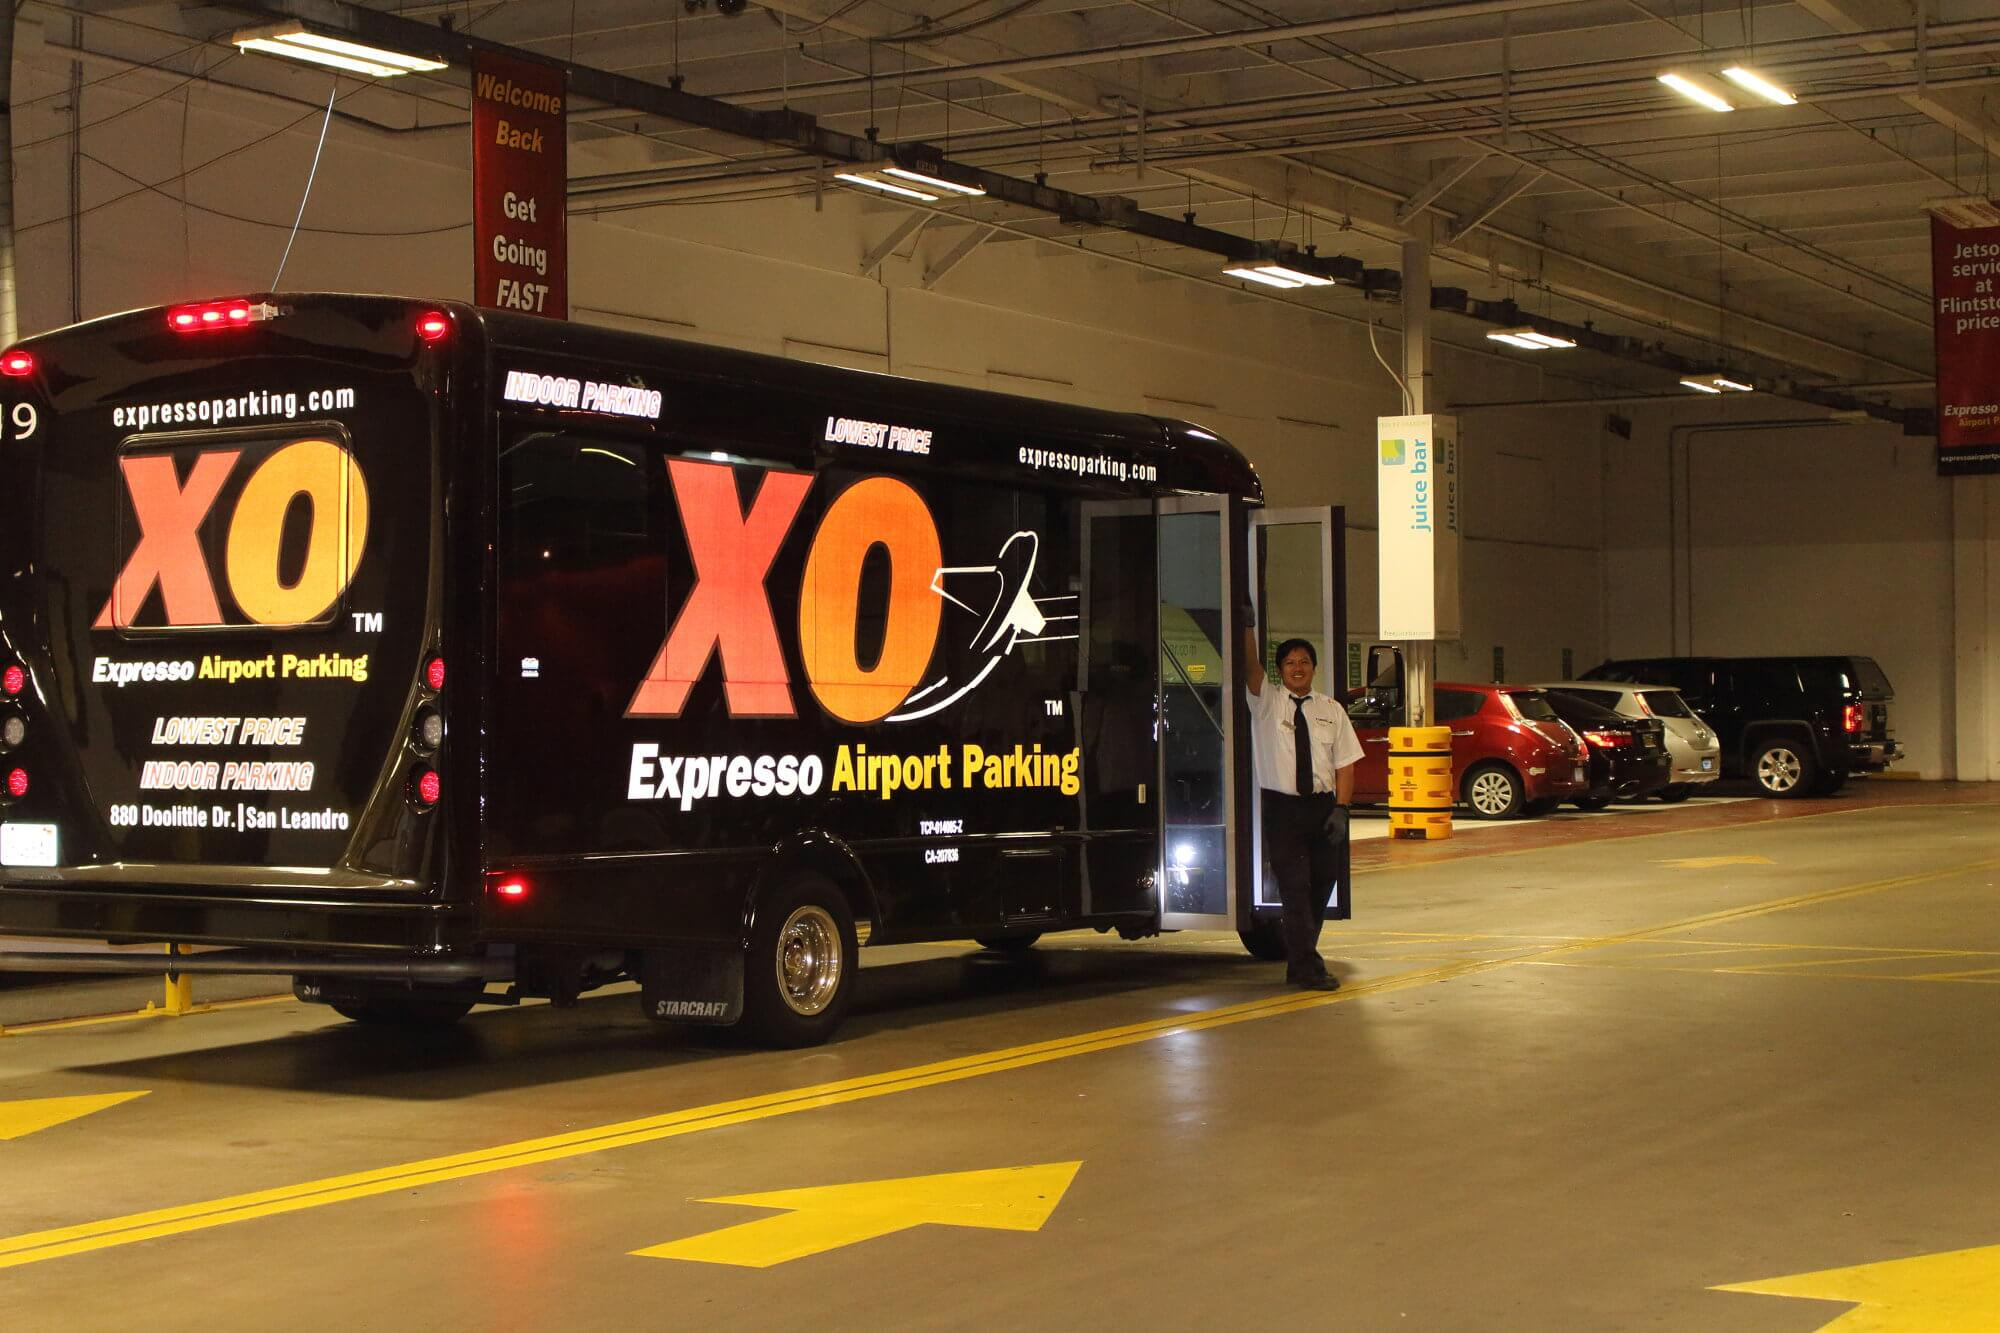 Expresso airport parking coupon oakland